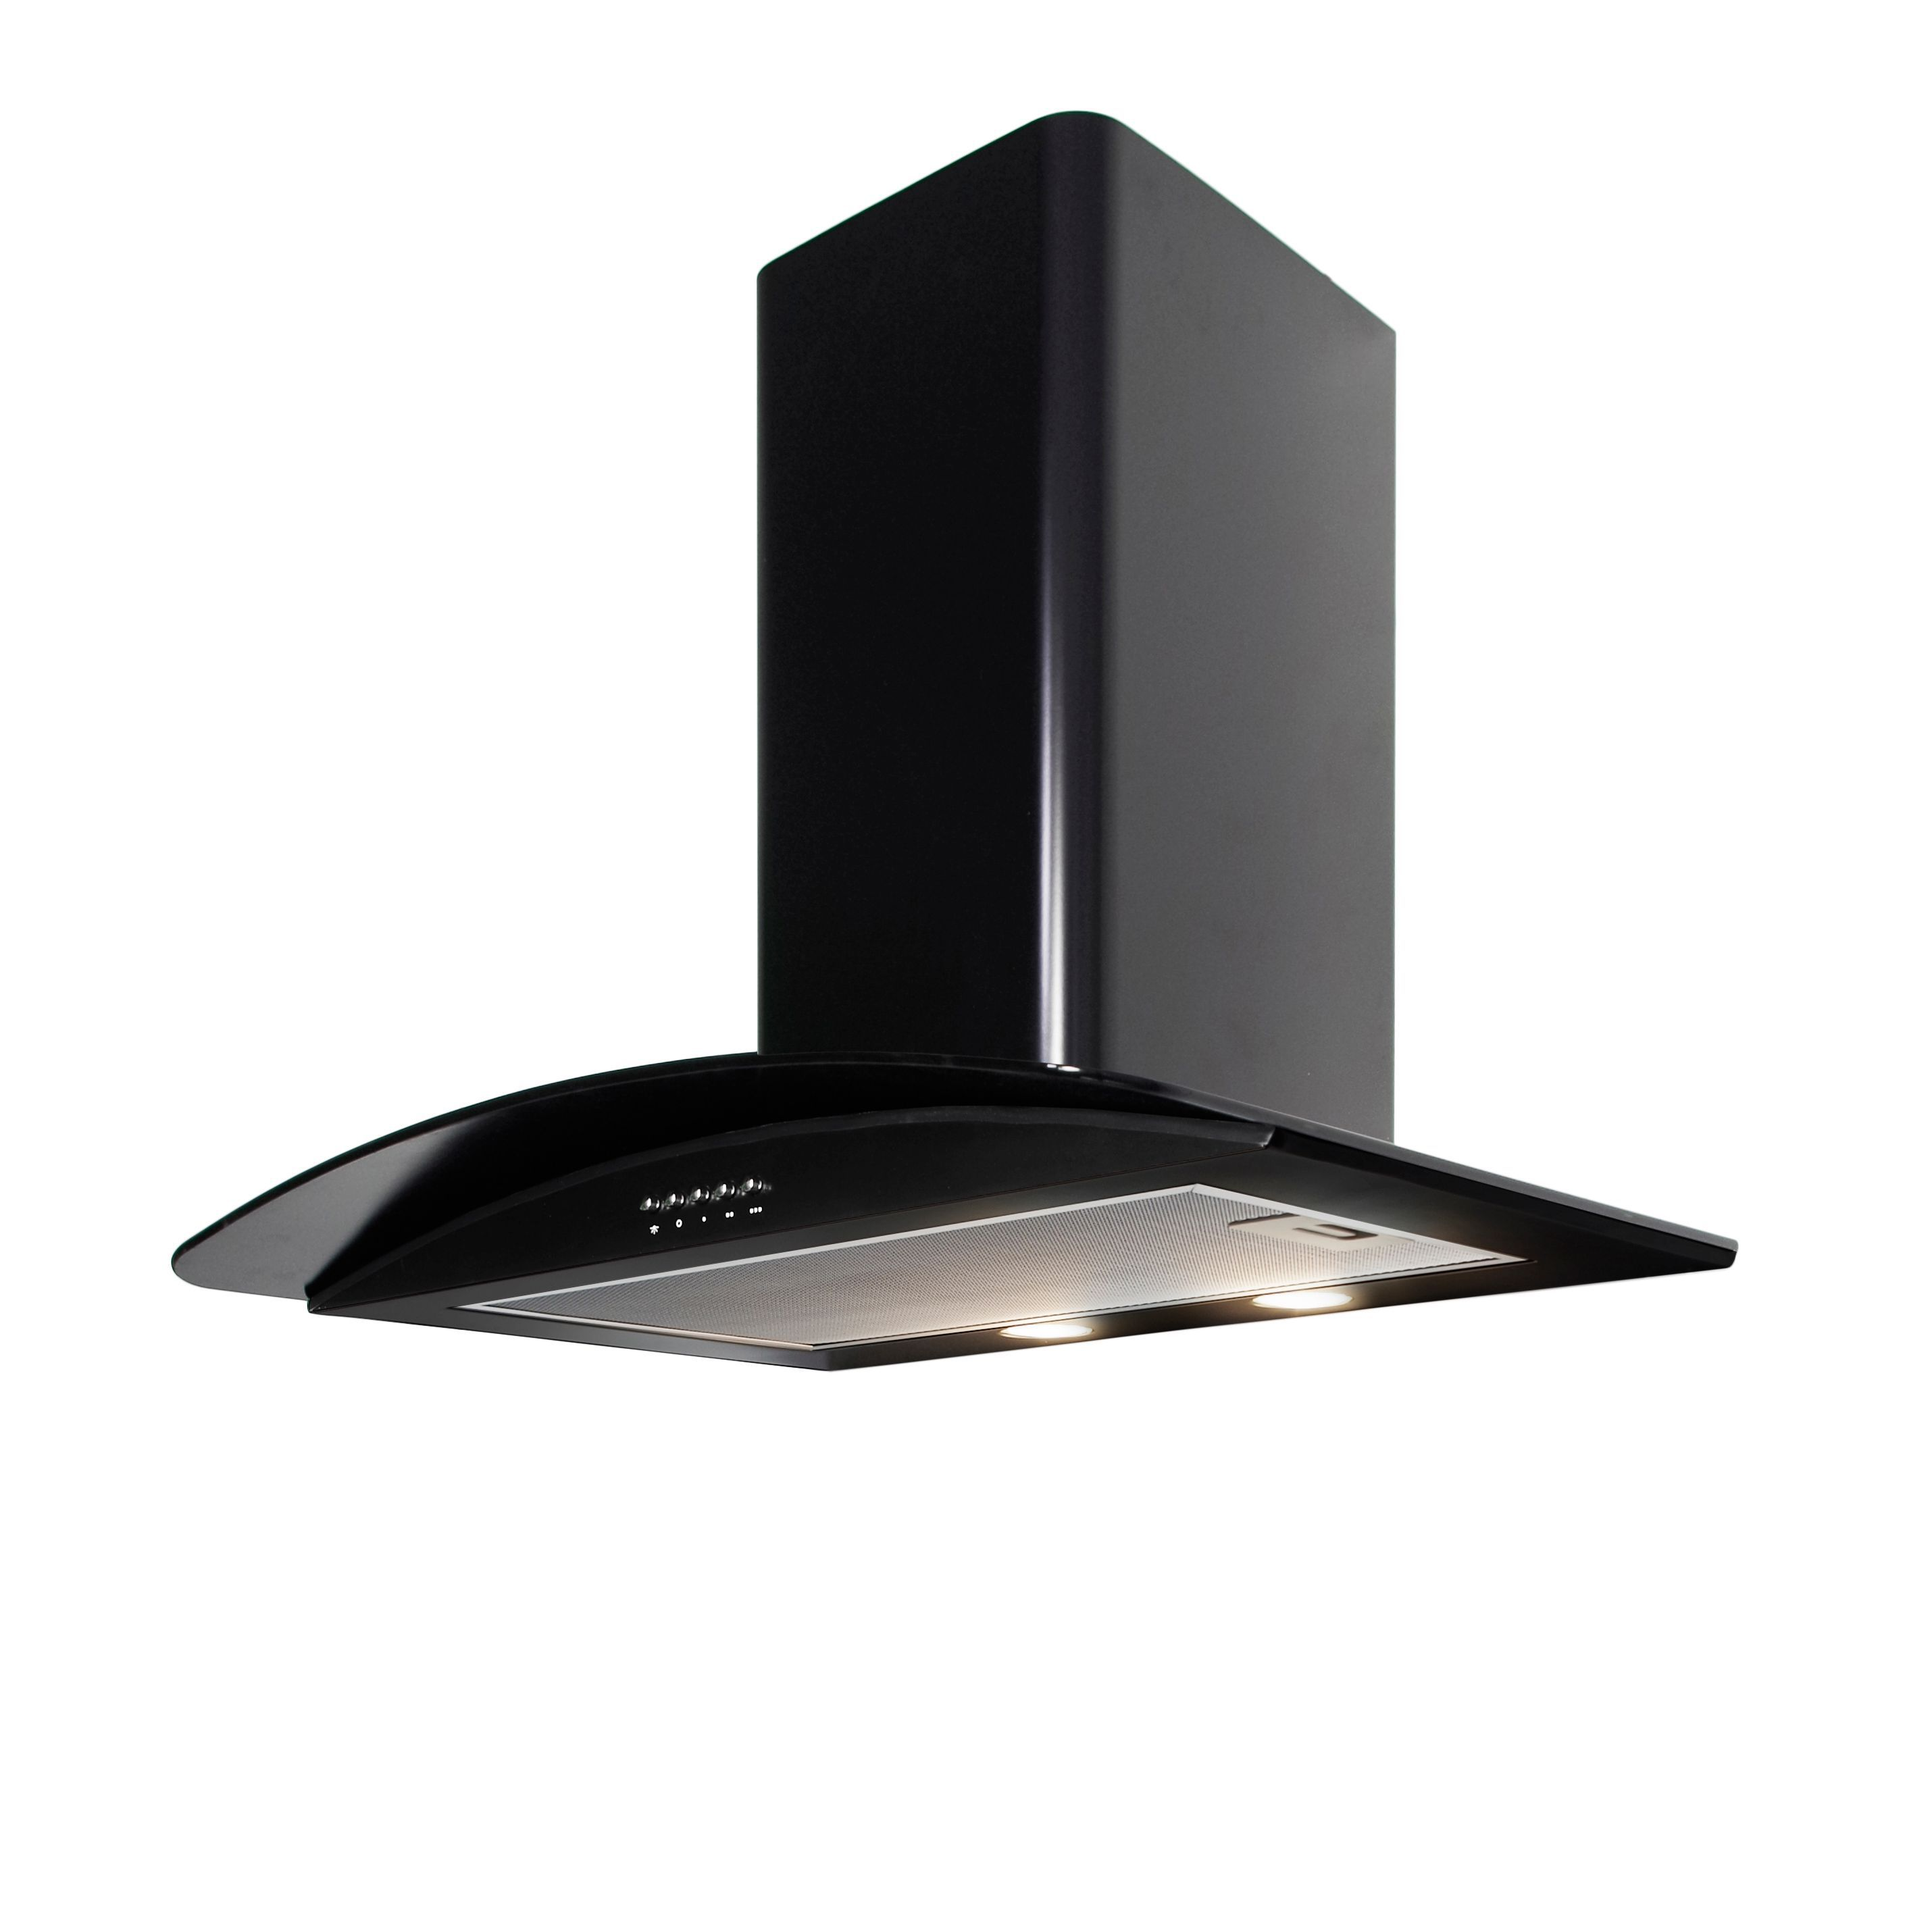 Cooke & Lewis Clgch90bk Blackout Coated Cooker Hood, (w) 900mm